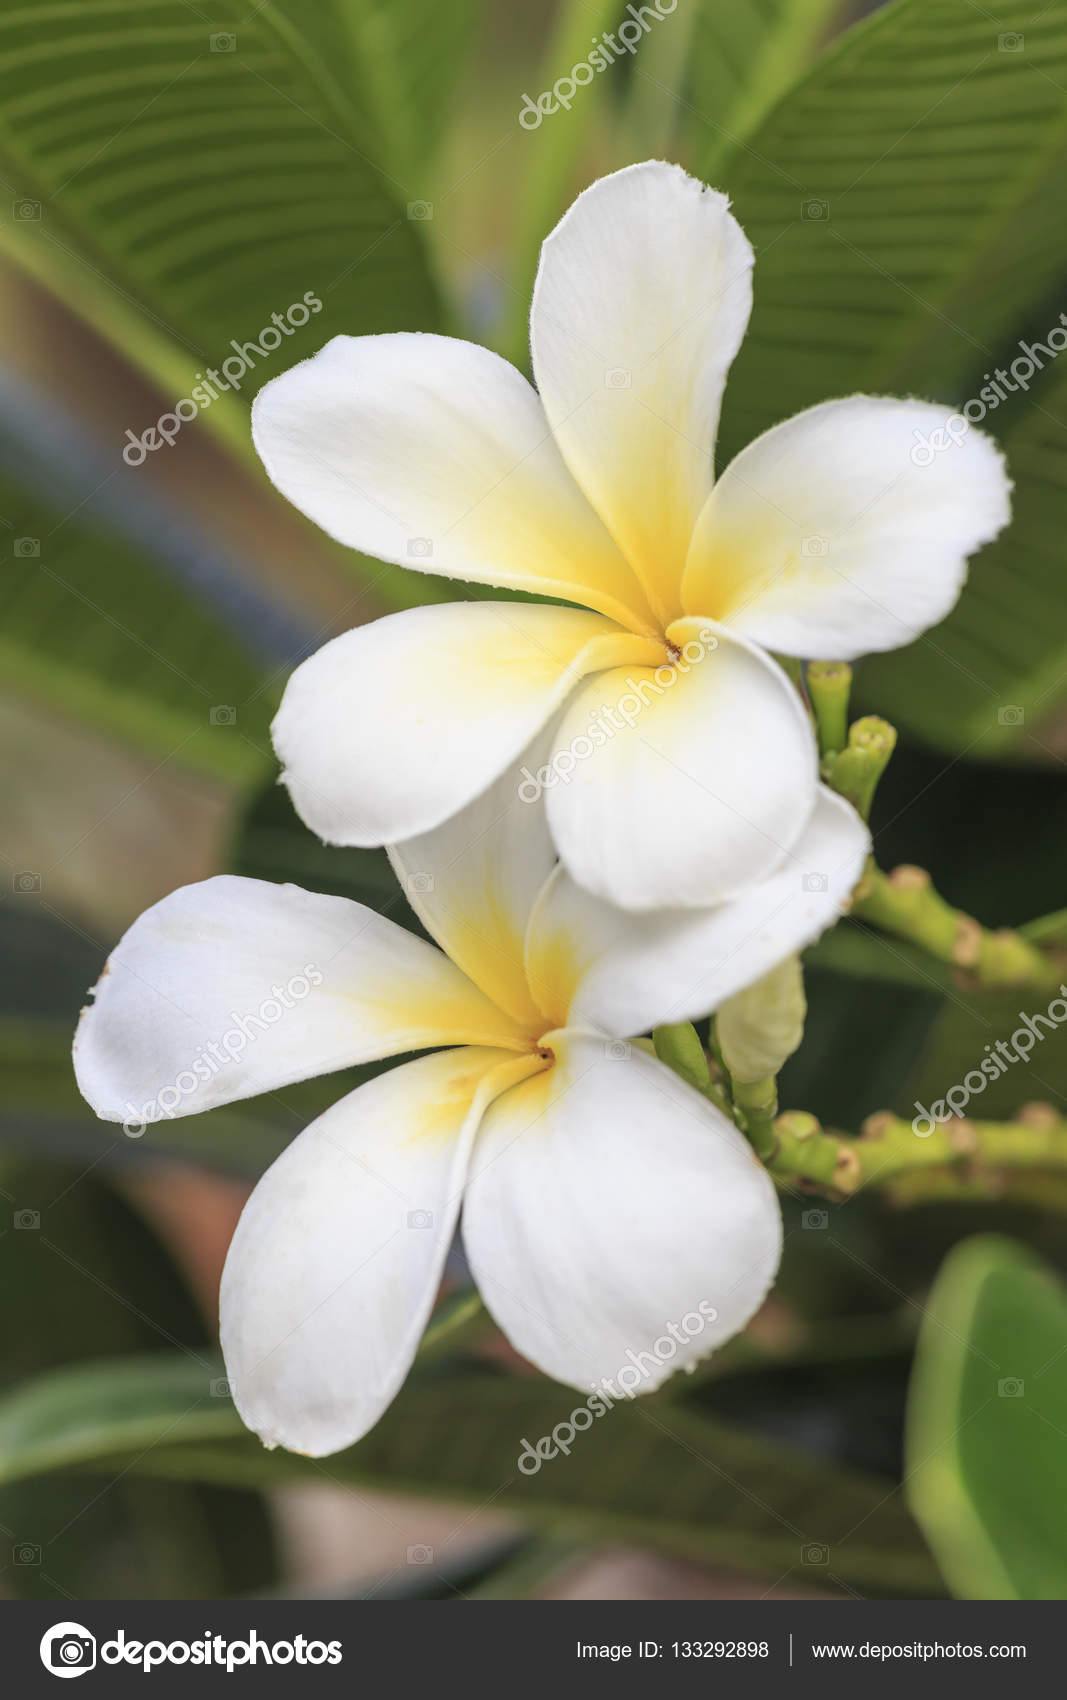 White plumeria tropical flower stock photo olovedog1 133292898 white plumeria tropical flower stock photo mightylinksfo